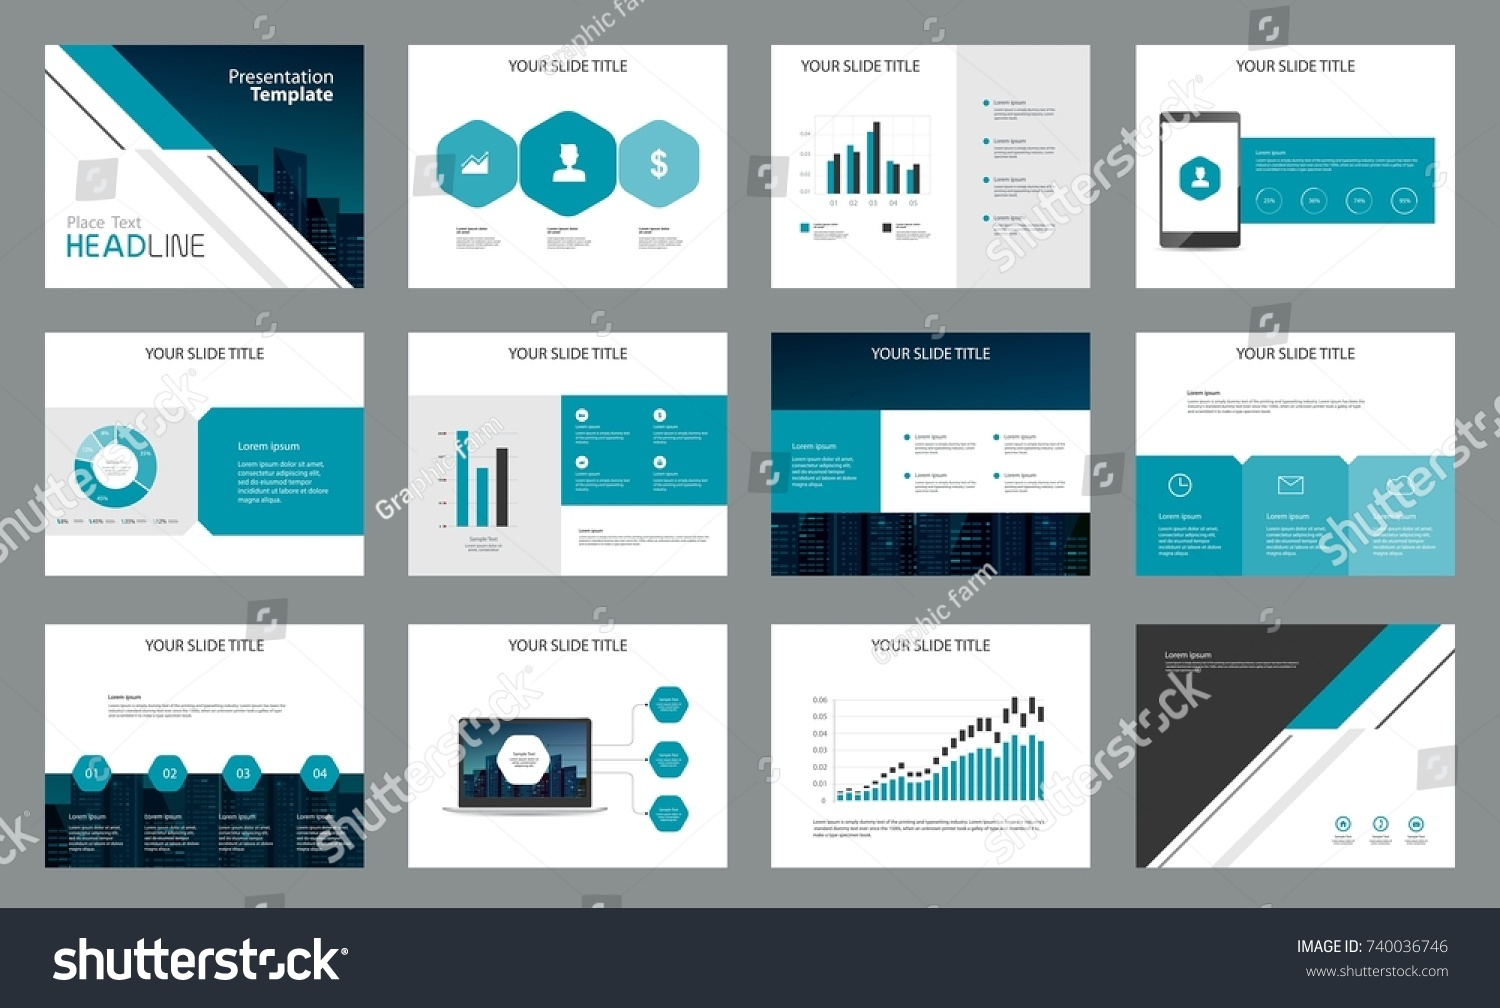 Page design business presentation template report stock vector page design for business presentation template and for report company profile brochure and book accmission